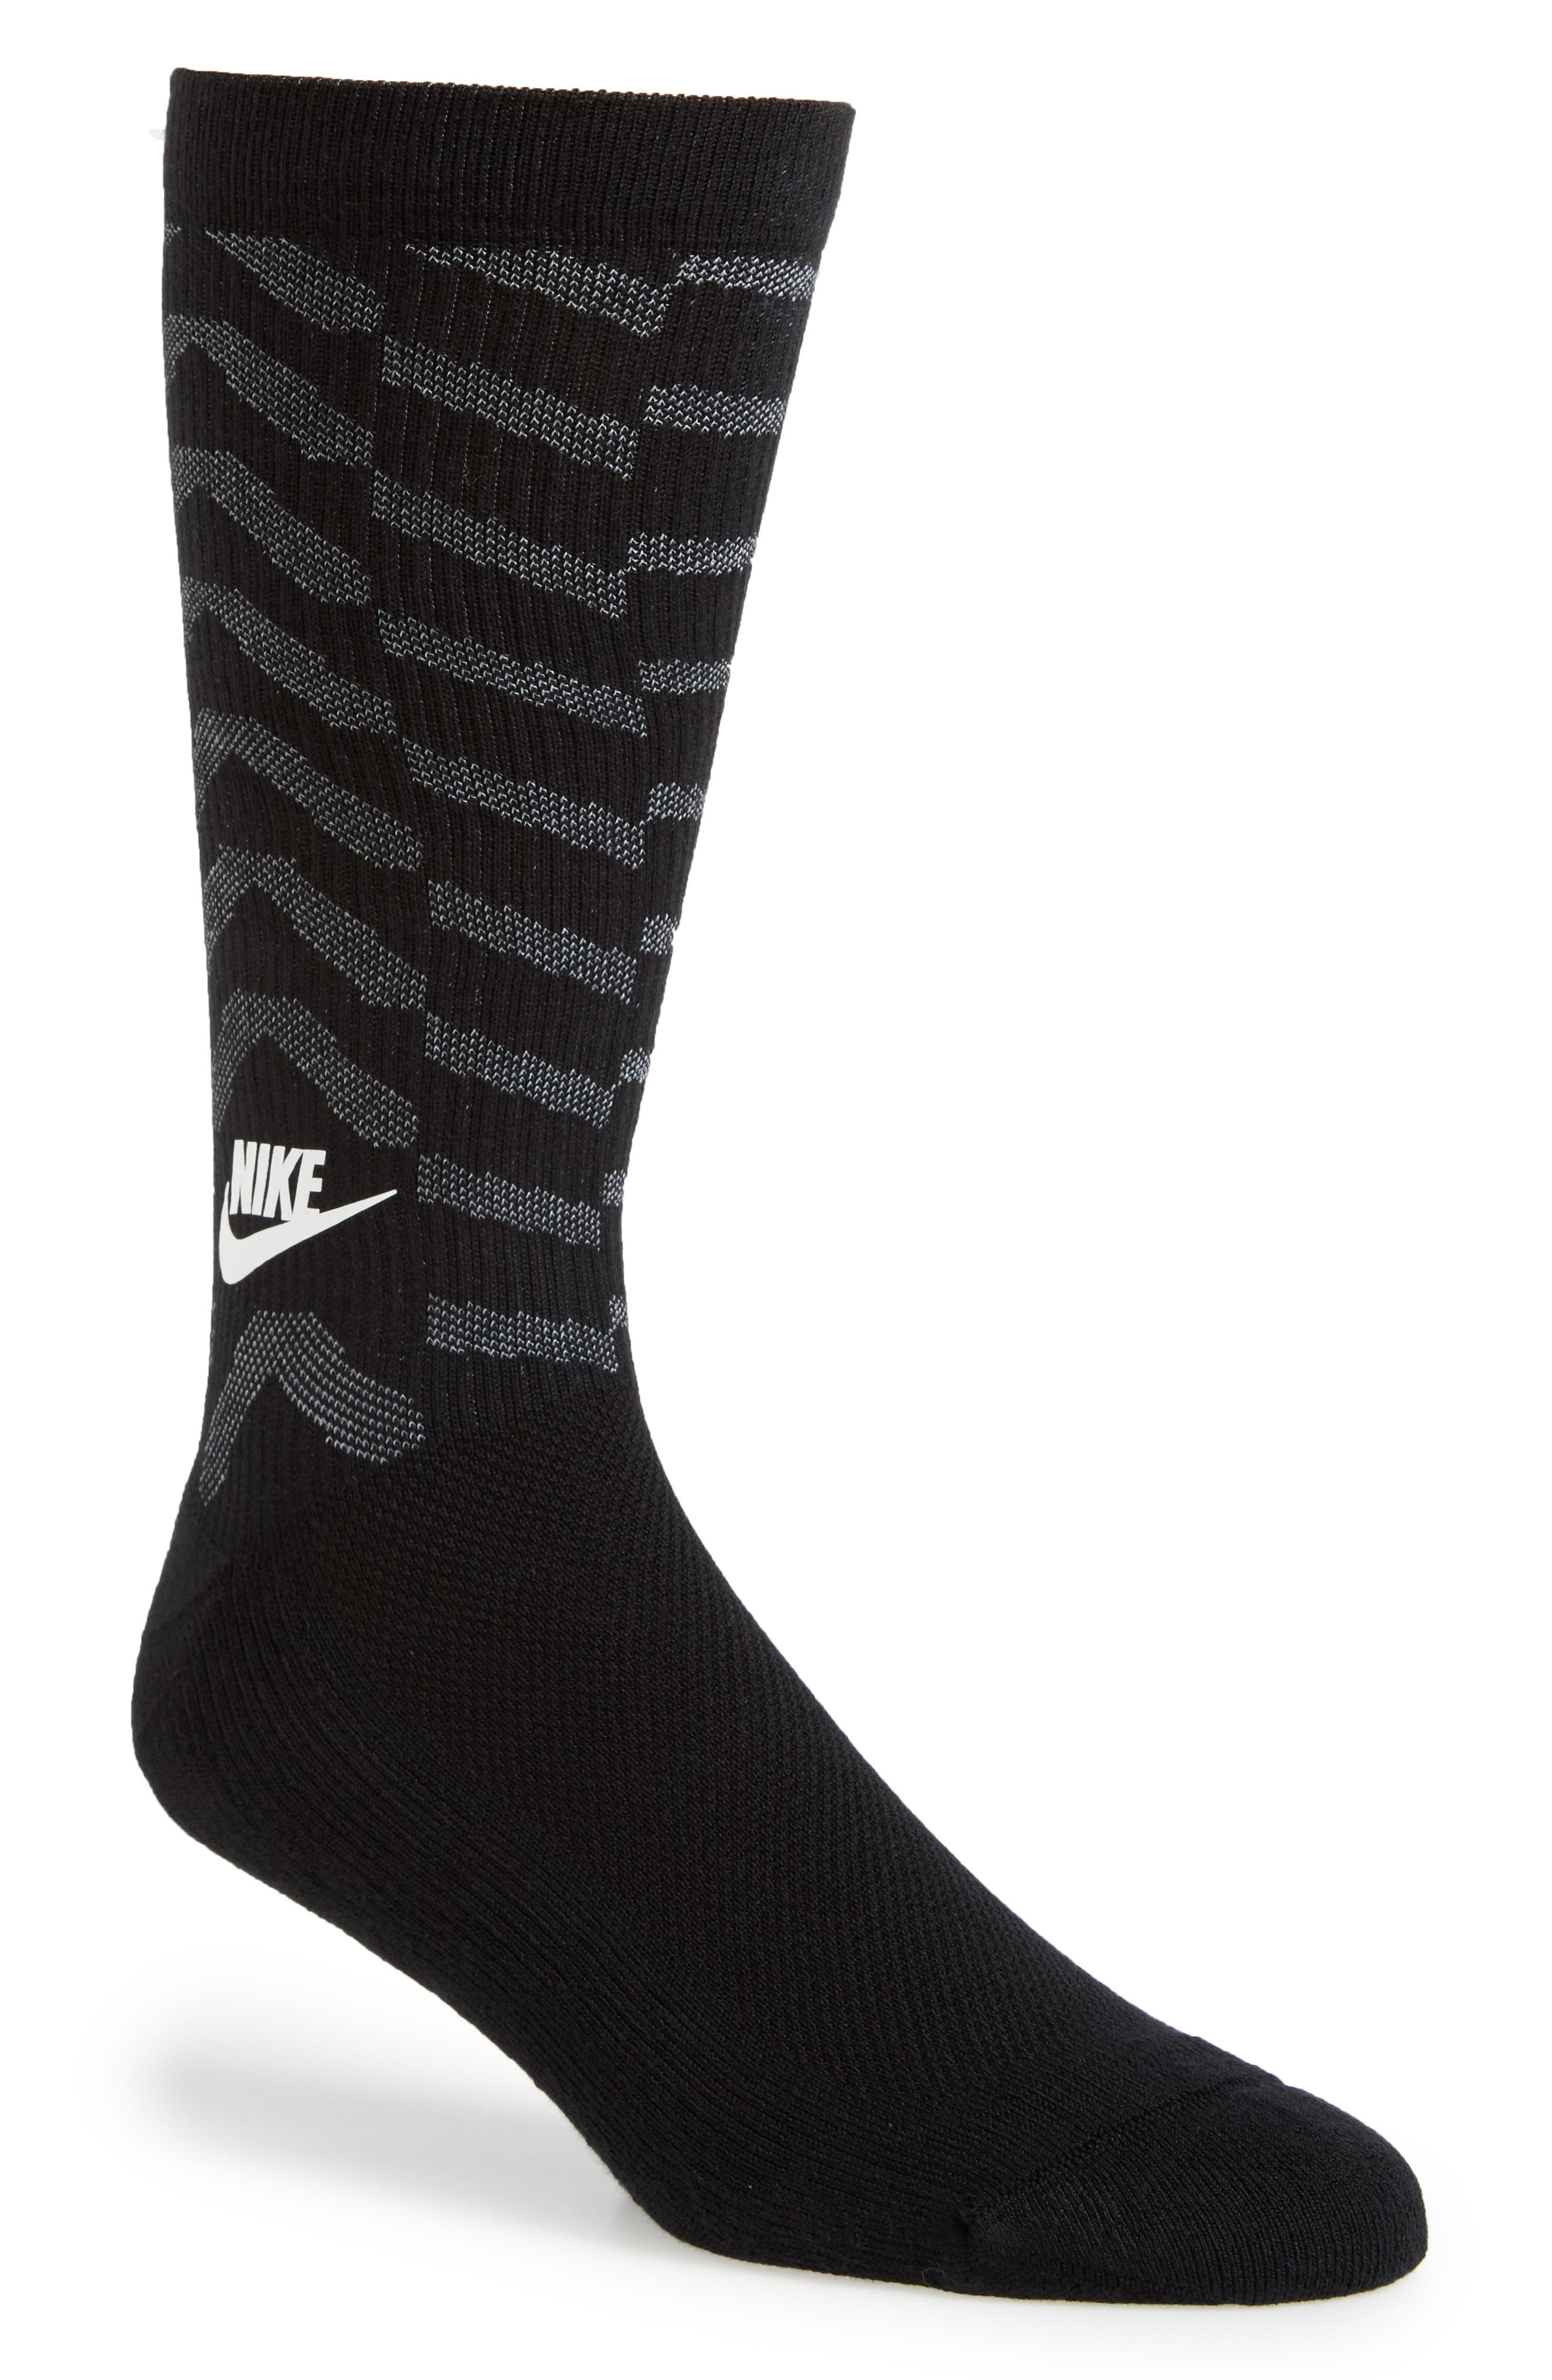 Statement Graphic Socks,                         Main,                         color, 010